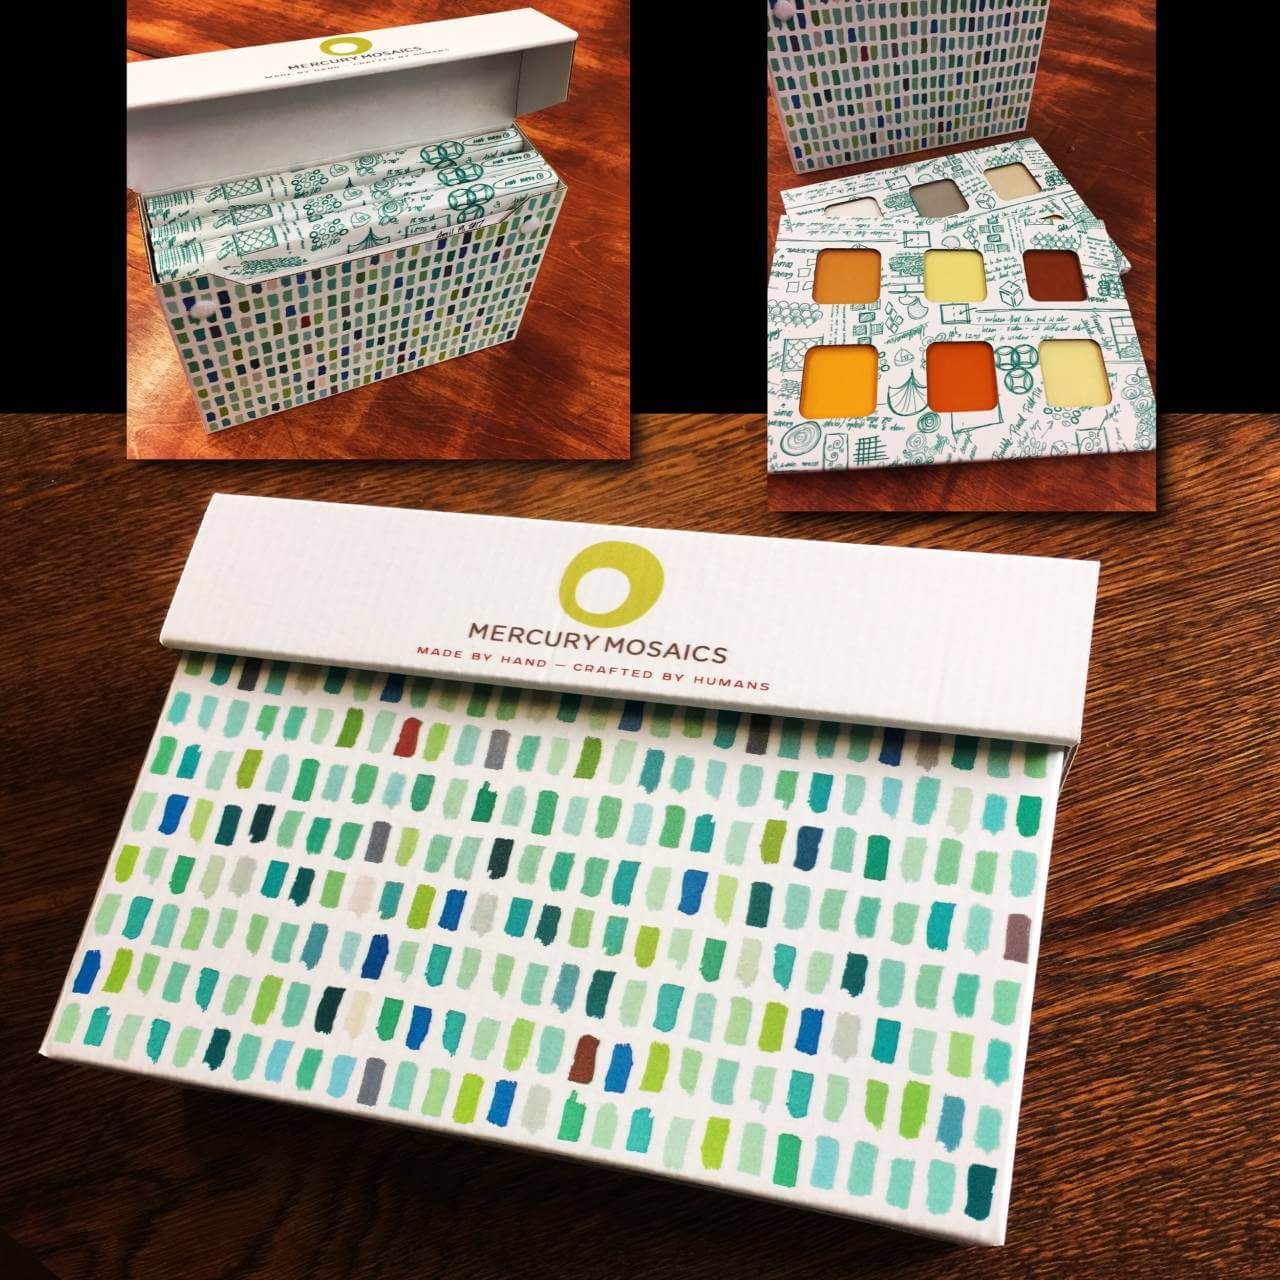 converting prospects into customers for Mercury Mosaics